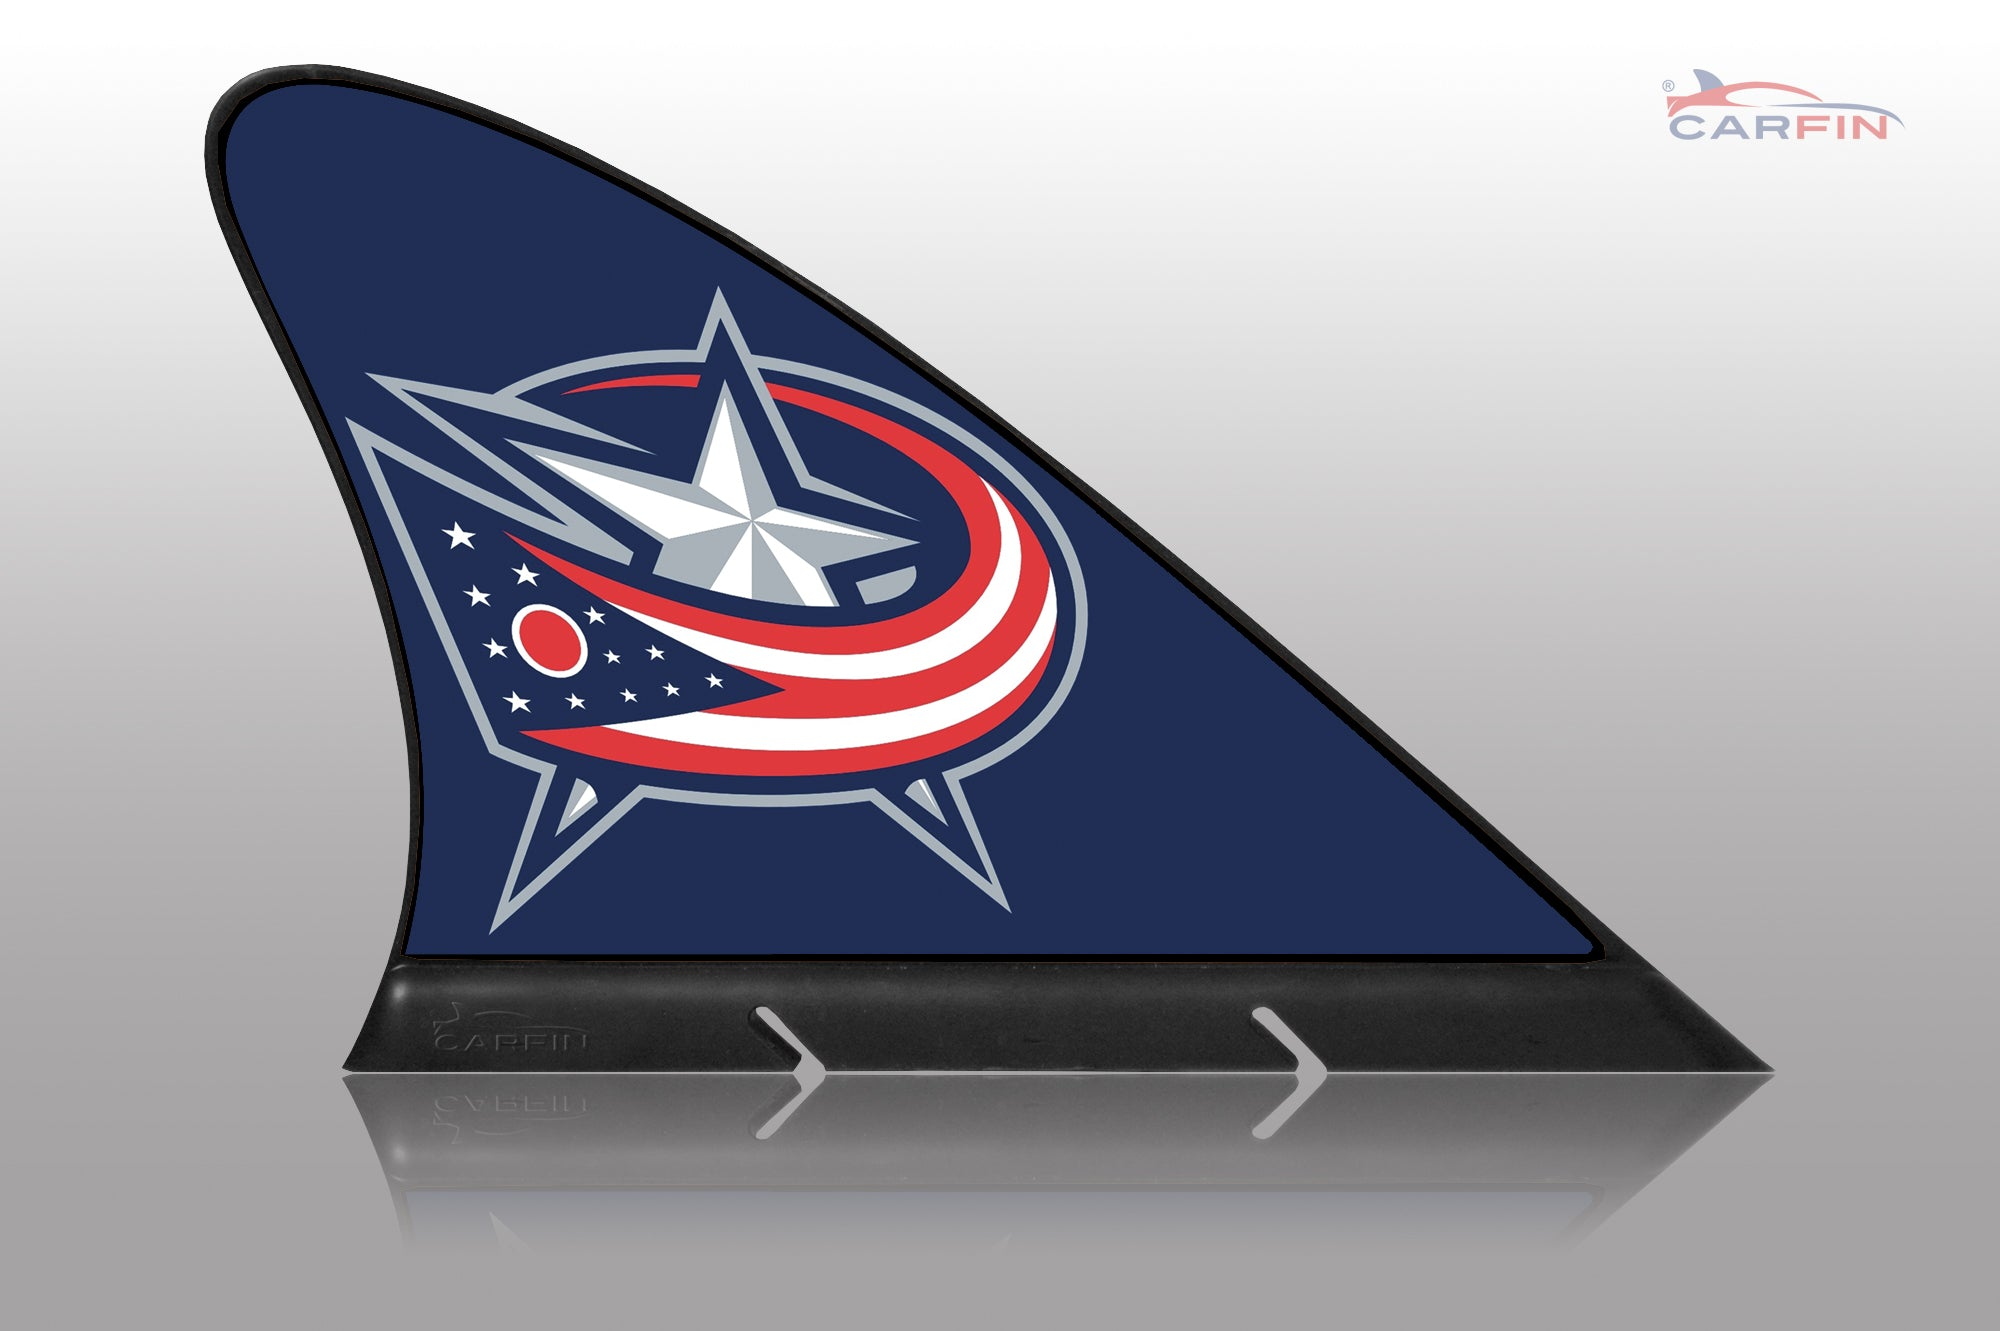 Columbus Blue Jackets Car Flag, CARFIN  Magnetic Car Flag. - Carfin